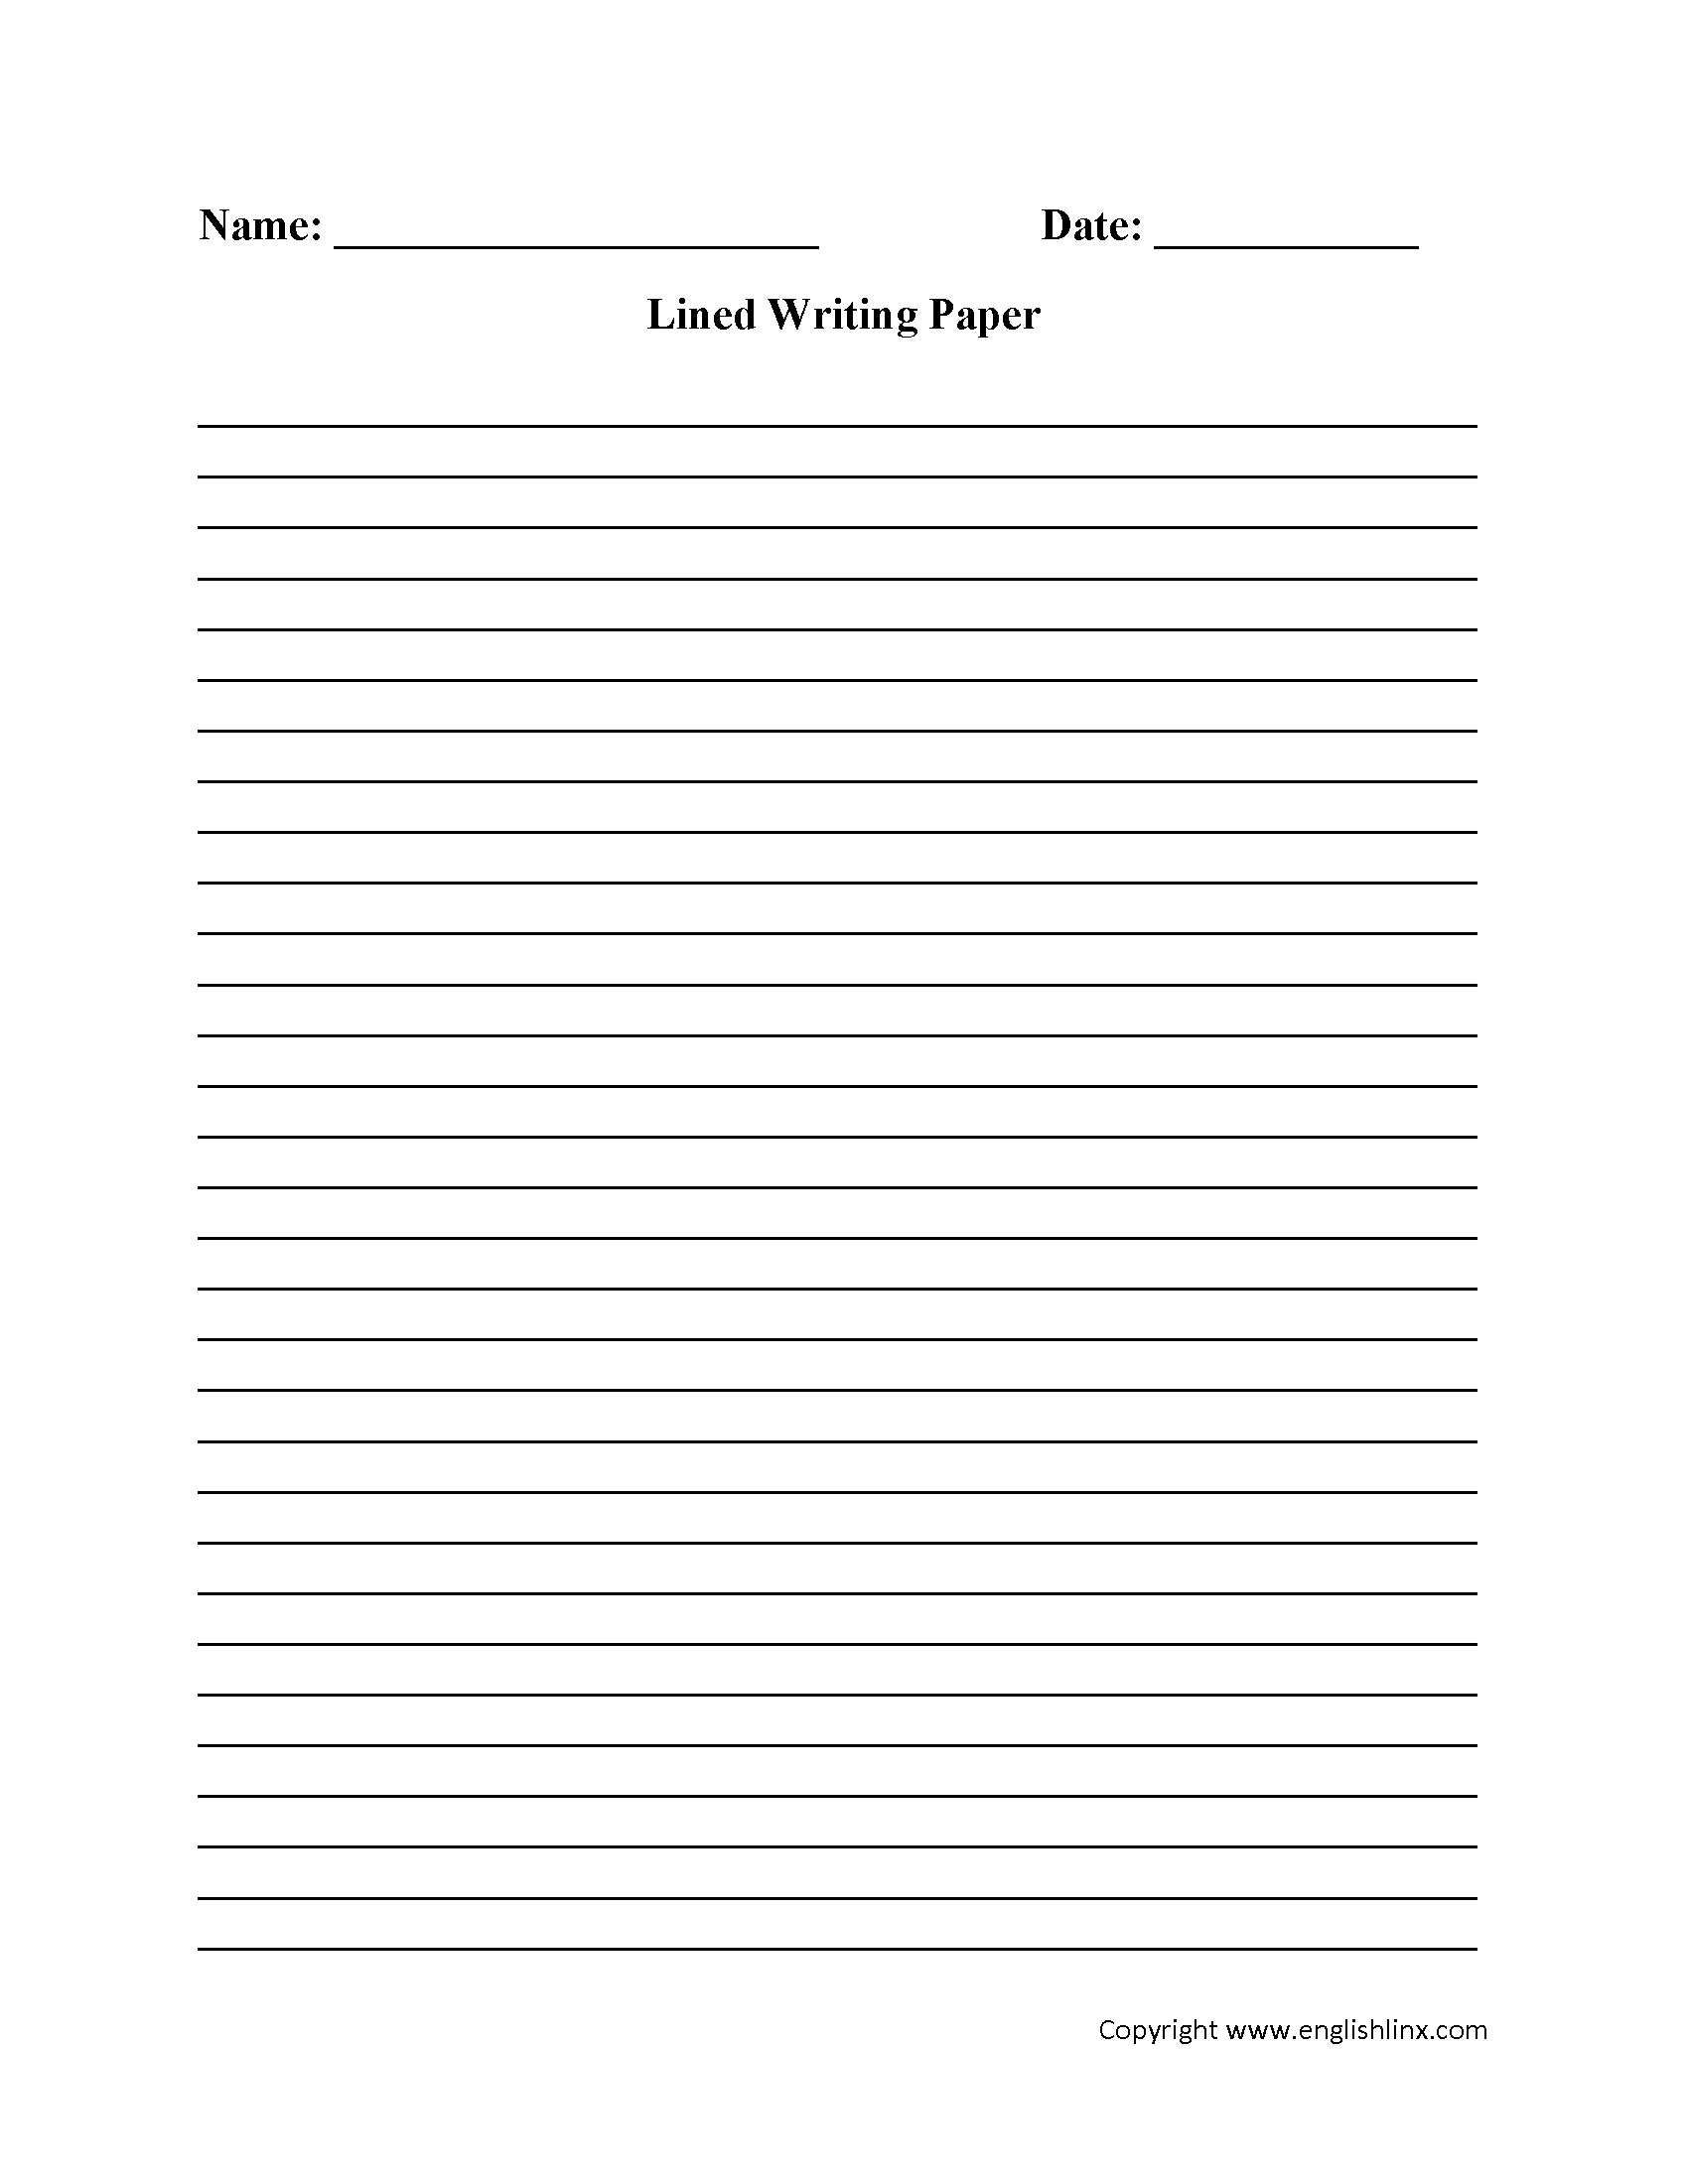 Kids Writing Paper Png & Free Kids Writing Paper Transparent - Free Printable Lined Handwriting Paper